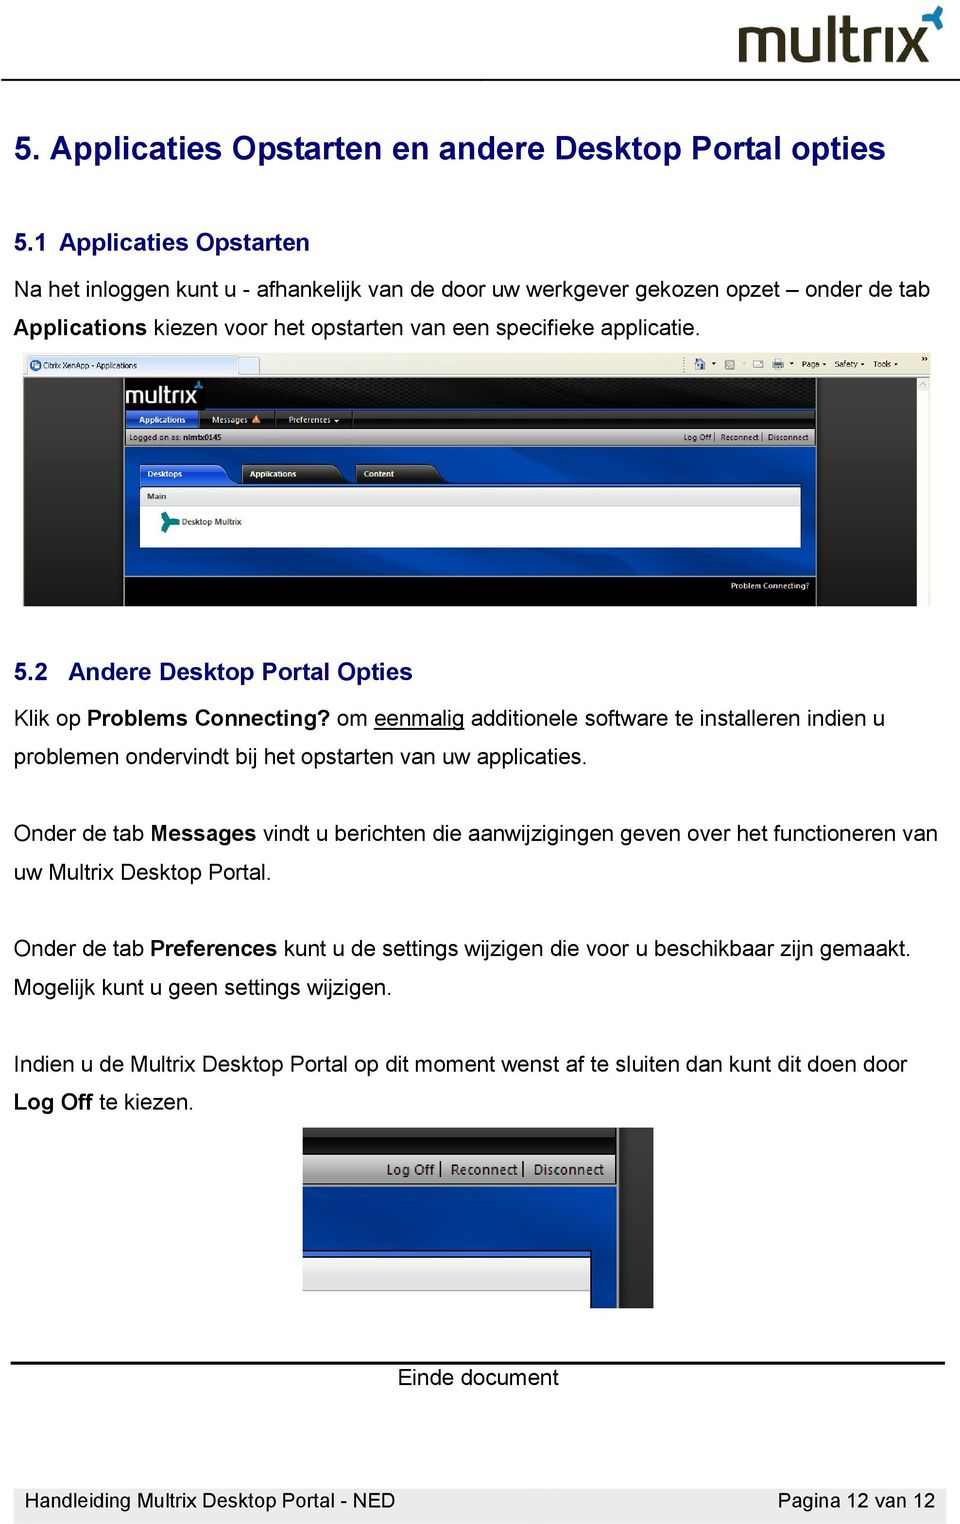 2 Andere Desktop Portal Opties Klik op Problems Connecting? om eenmalig additionele software te installeren indien u problemen ondervindt bij het opstarten van uw applicaties.